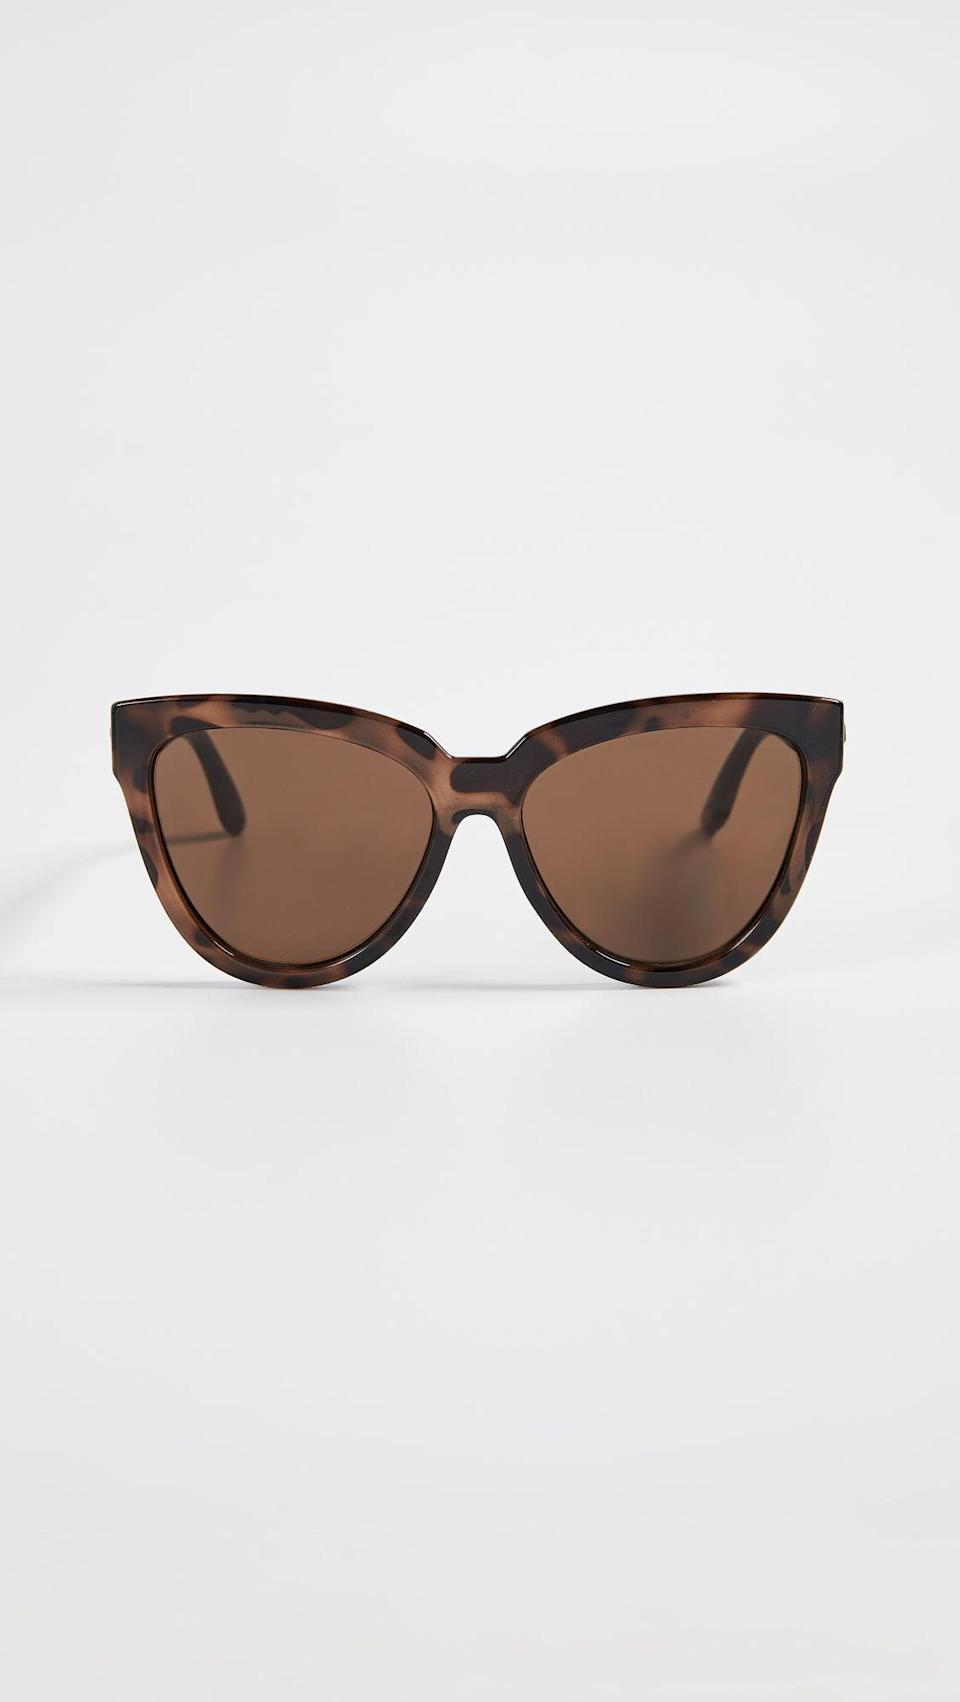 """<p><strong>Le Specs</strong></p><p>shopbop.com</p><p><strong>$59.00</strong></p><p><a href=""""https://go.redirectingat.com?id=74968X1596630&url=https%3A%2F%2Fwww.shopbop.com%2Fliar-sunglasses-le-specs%2Fvp%2Fv%3D1%2F1546489300.htm&sref=https%3A%2F%2Fwww.cosmopolitan.com%2Fstyle-beauty%2Ffashion%2Fg13602855%2Fbest-gift-ideas-for-women%2F"""" rel=""""nofollow noopener"""" target=""""_blank"""" data-ylk=""""slk:Shop Now"""" class=""""link rapid-noclick-resp"""">Shop Now</a></p><p>A pair of trendy Le Specs sunglasses is sure to be a hit. These bold frames accentuate the retro allure of full-coverage sunnies without feeling heavy.</p>"""